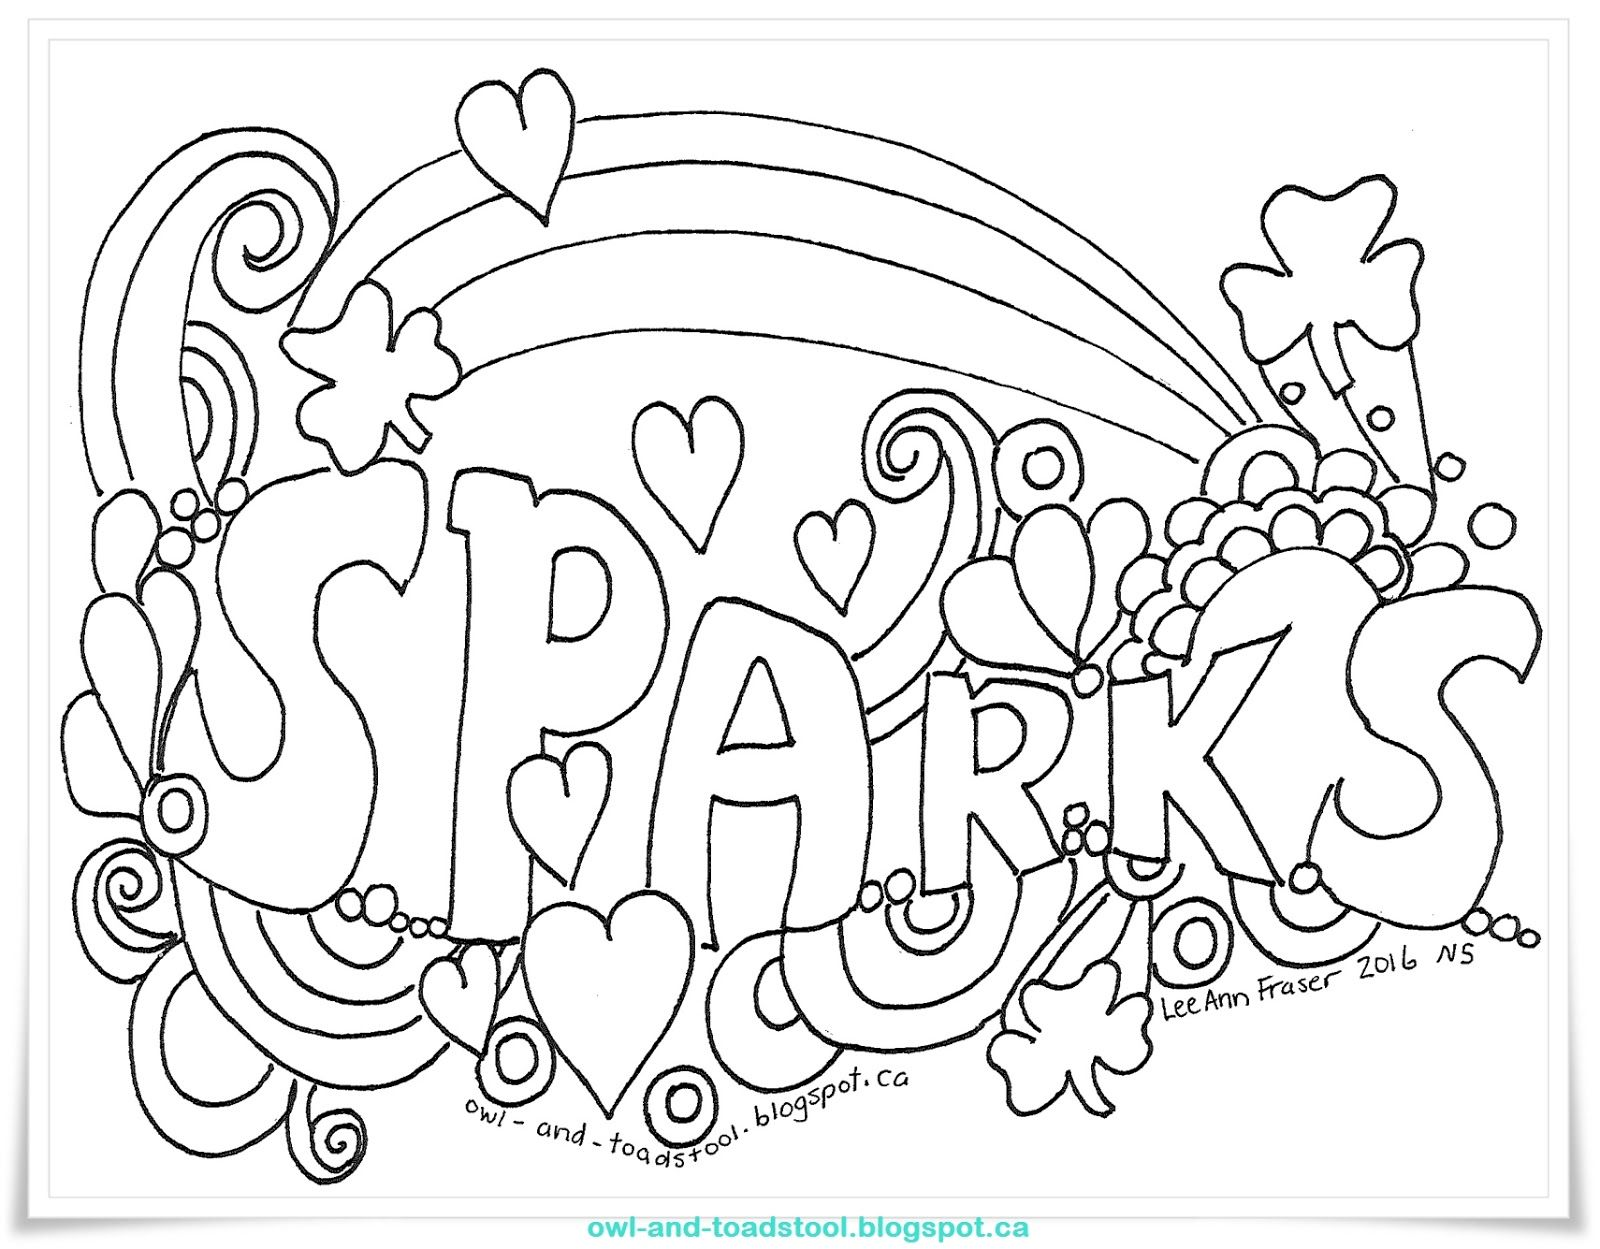 Girl Guide Blog Activities For Sparks Brownies Guides Pathfinders Badges Lapbook Crafts Crests Yardsale Hauls Awana Sparks Coloring Pages Bible Coloring Pages